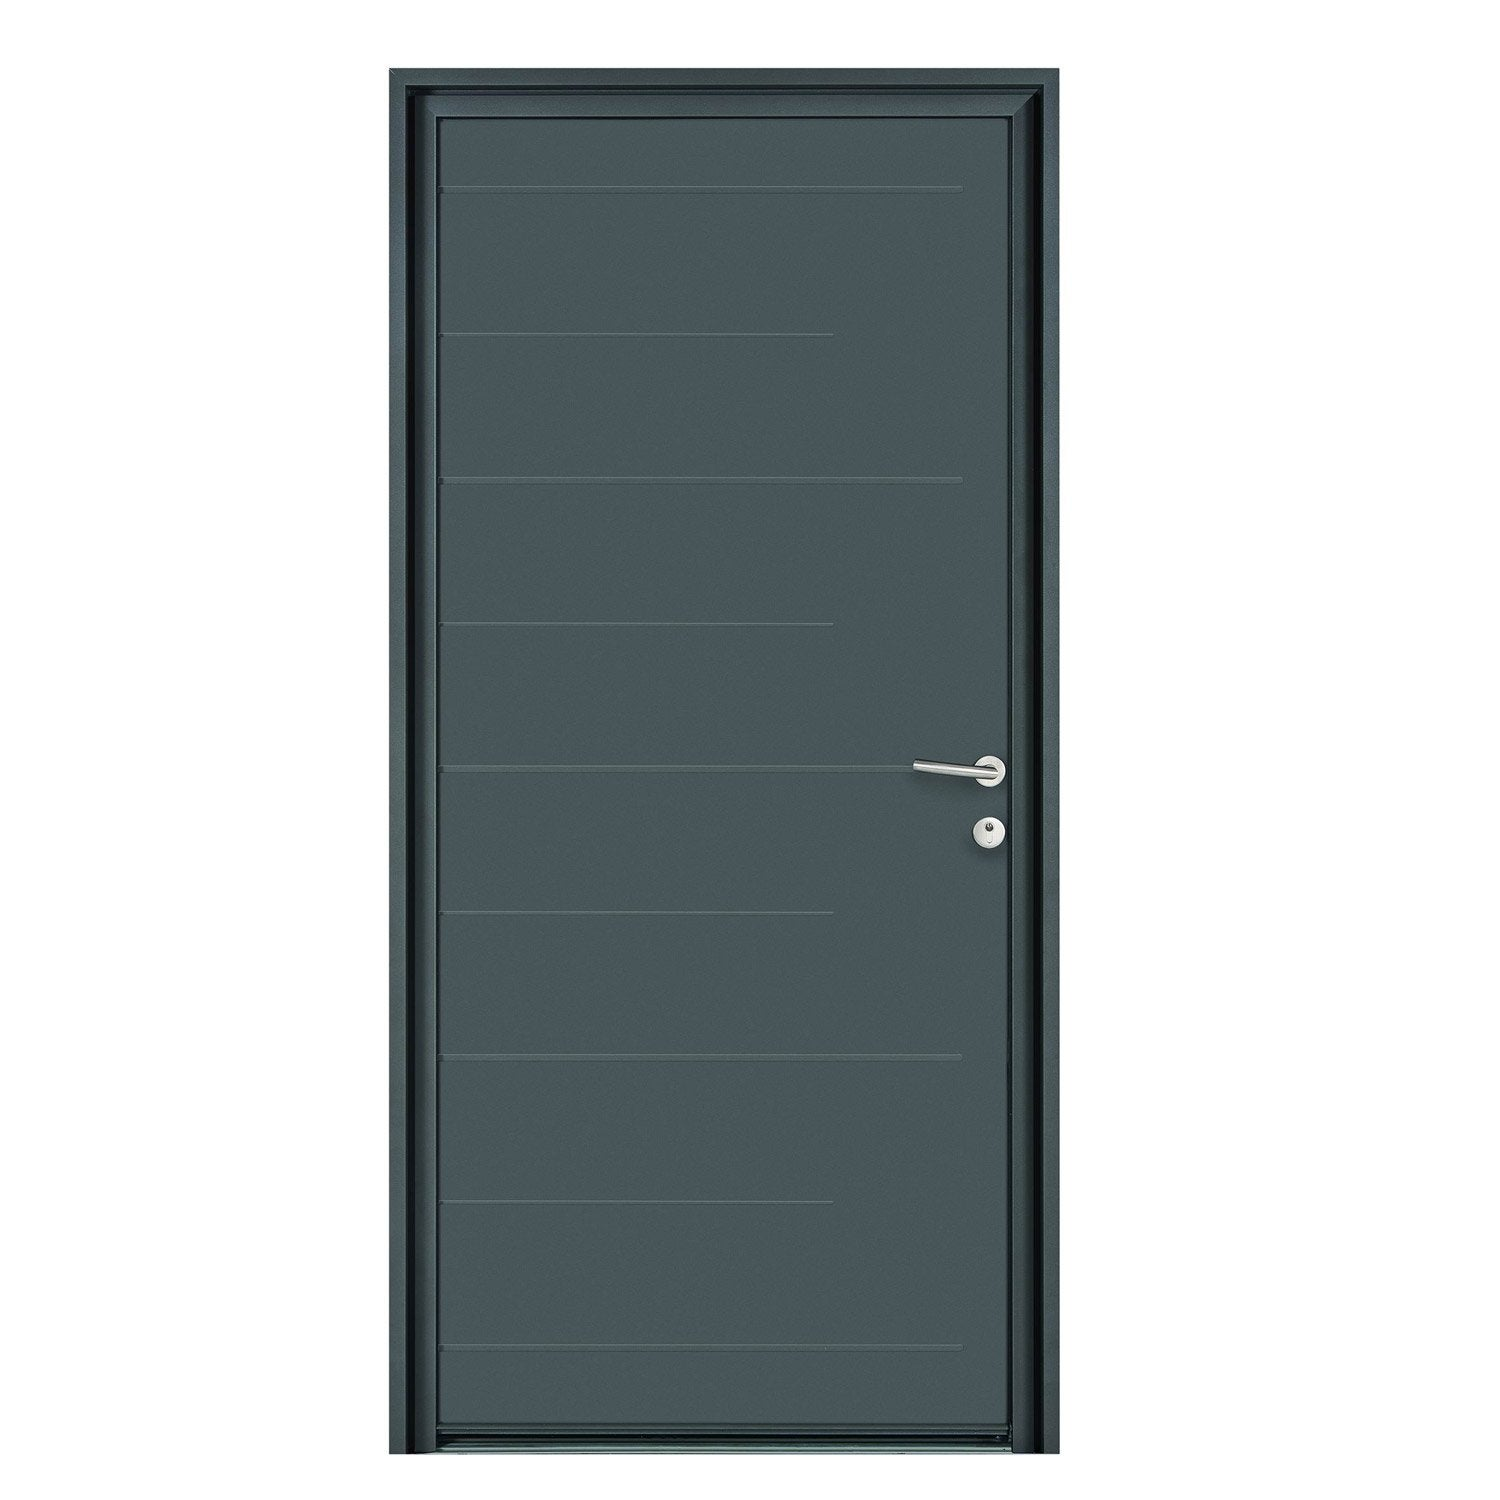 leroy merlin porte sur mesure leroy merlin porte de. Black Bedroom Furniture Sets. Home Design Ideas